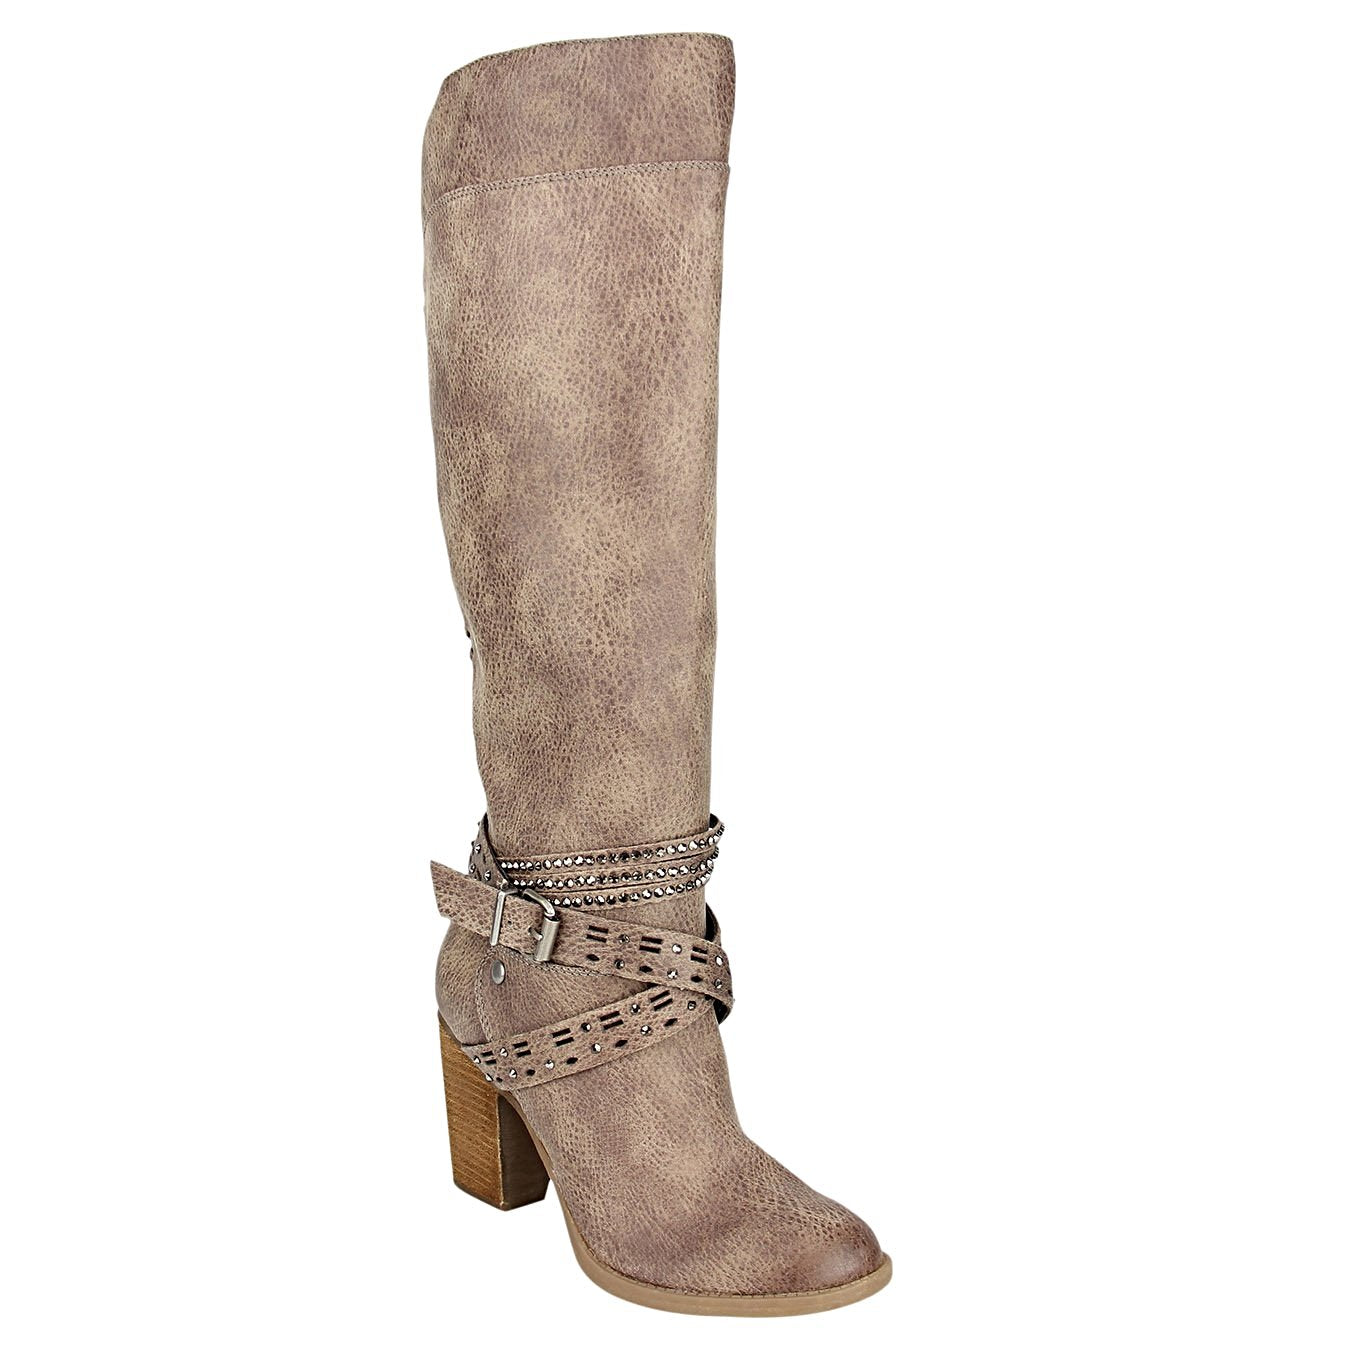 Not_Rated_Tall_Boot_stacked_heel_3-inch_decorative_ankle_straps_women_taupe